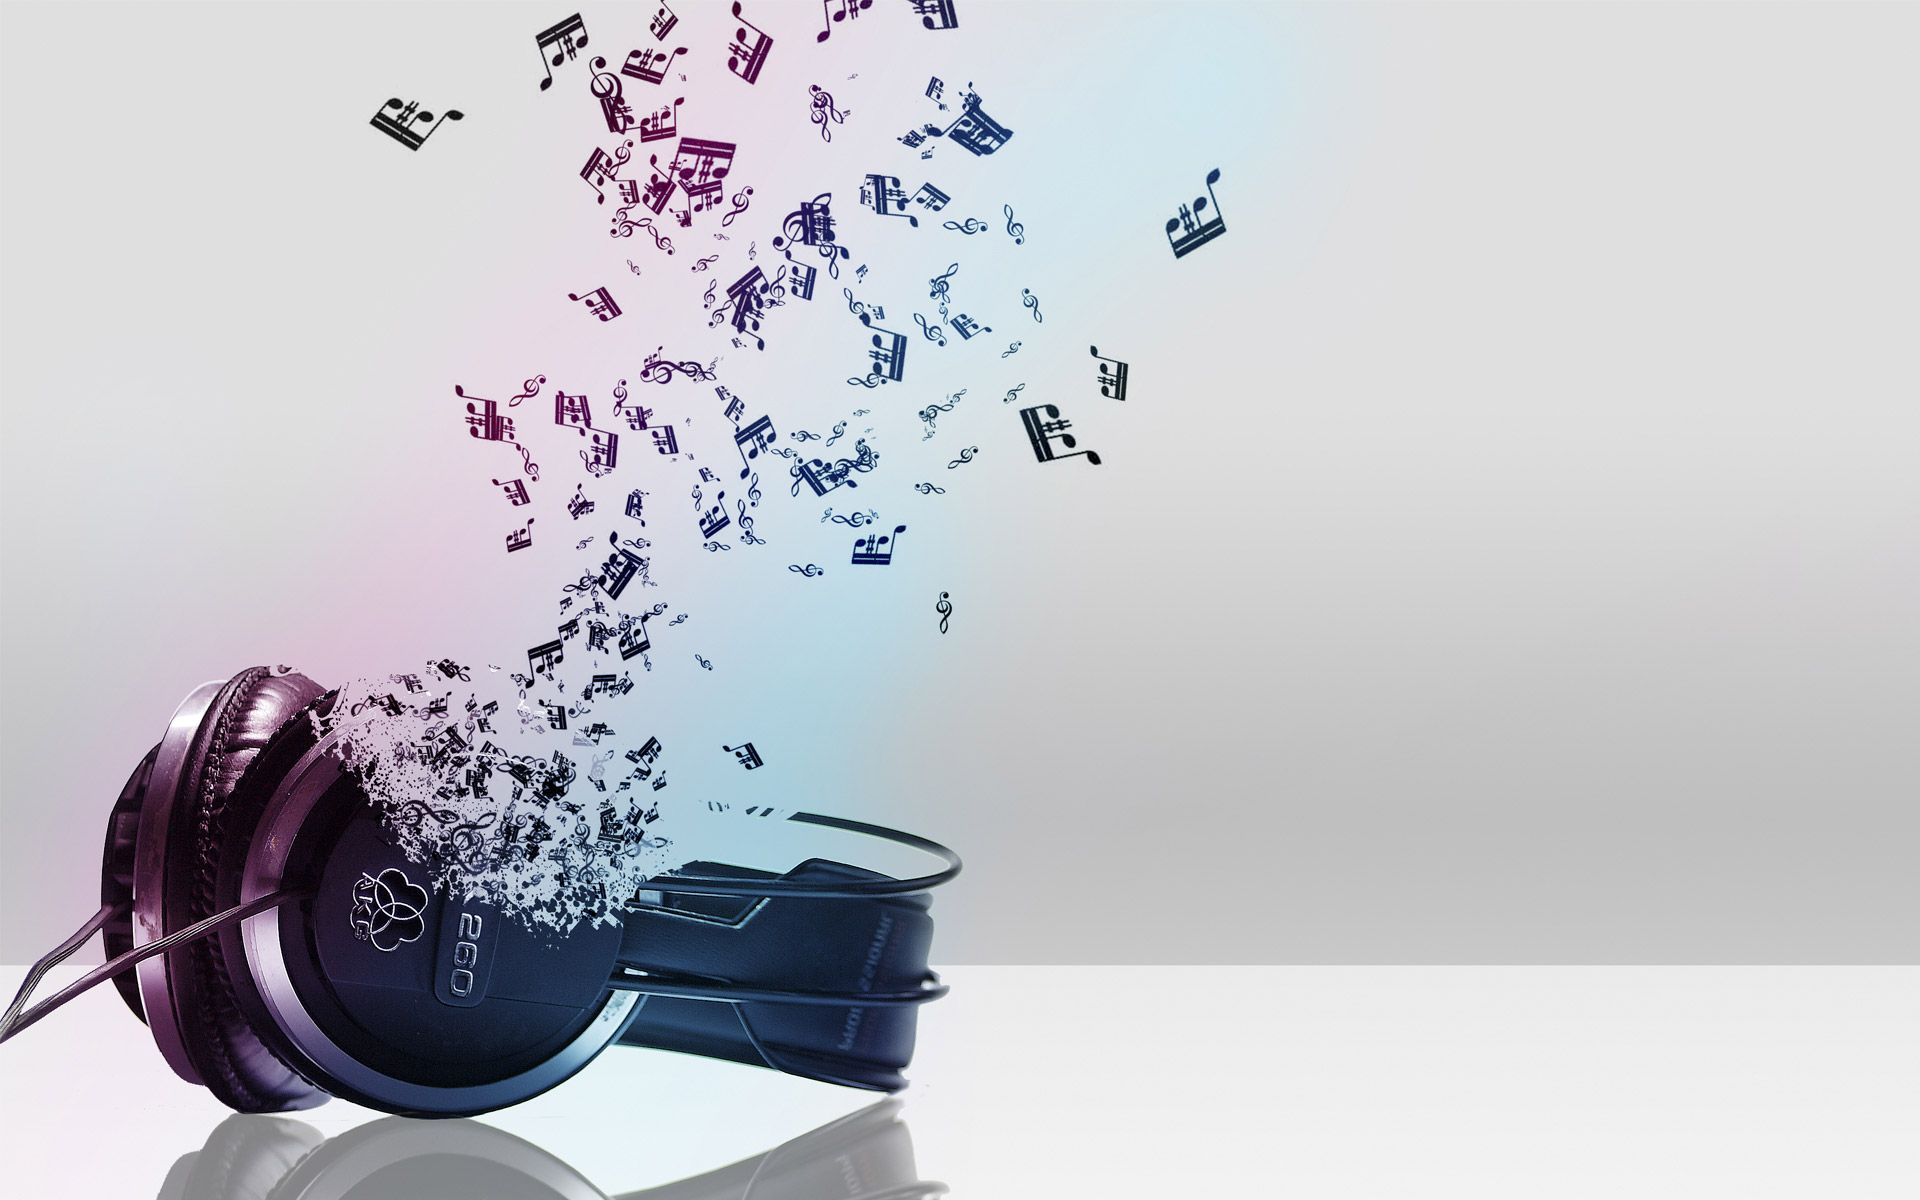 Music Wallpapers Hd Wallpapers Backgrounds Images Art Photos Music Wallpaper Music Notes Background Music Headphones